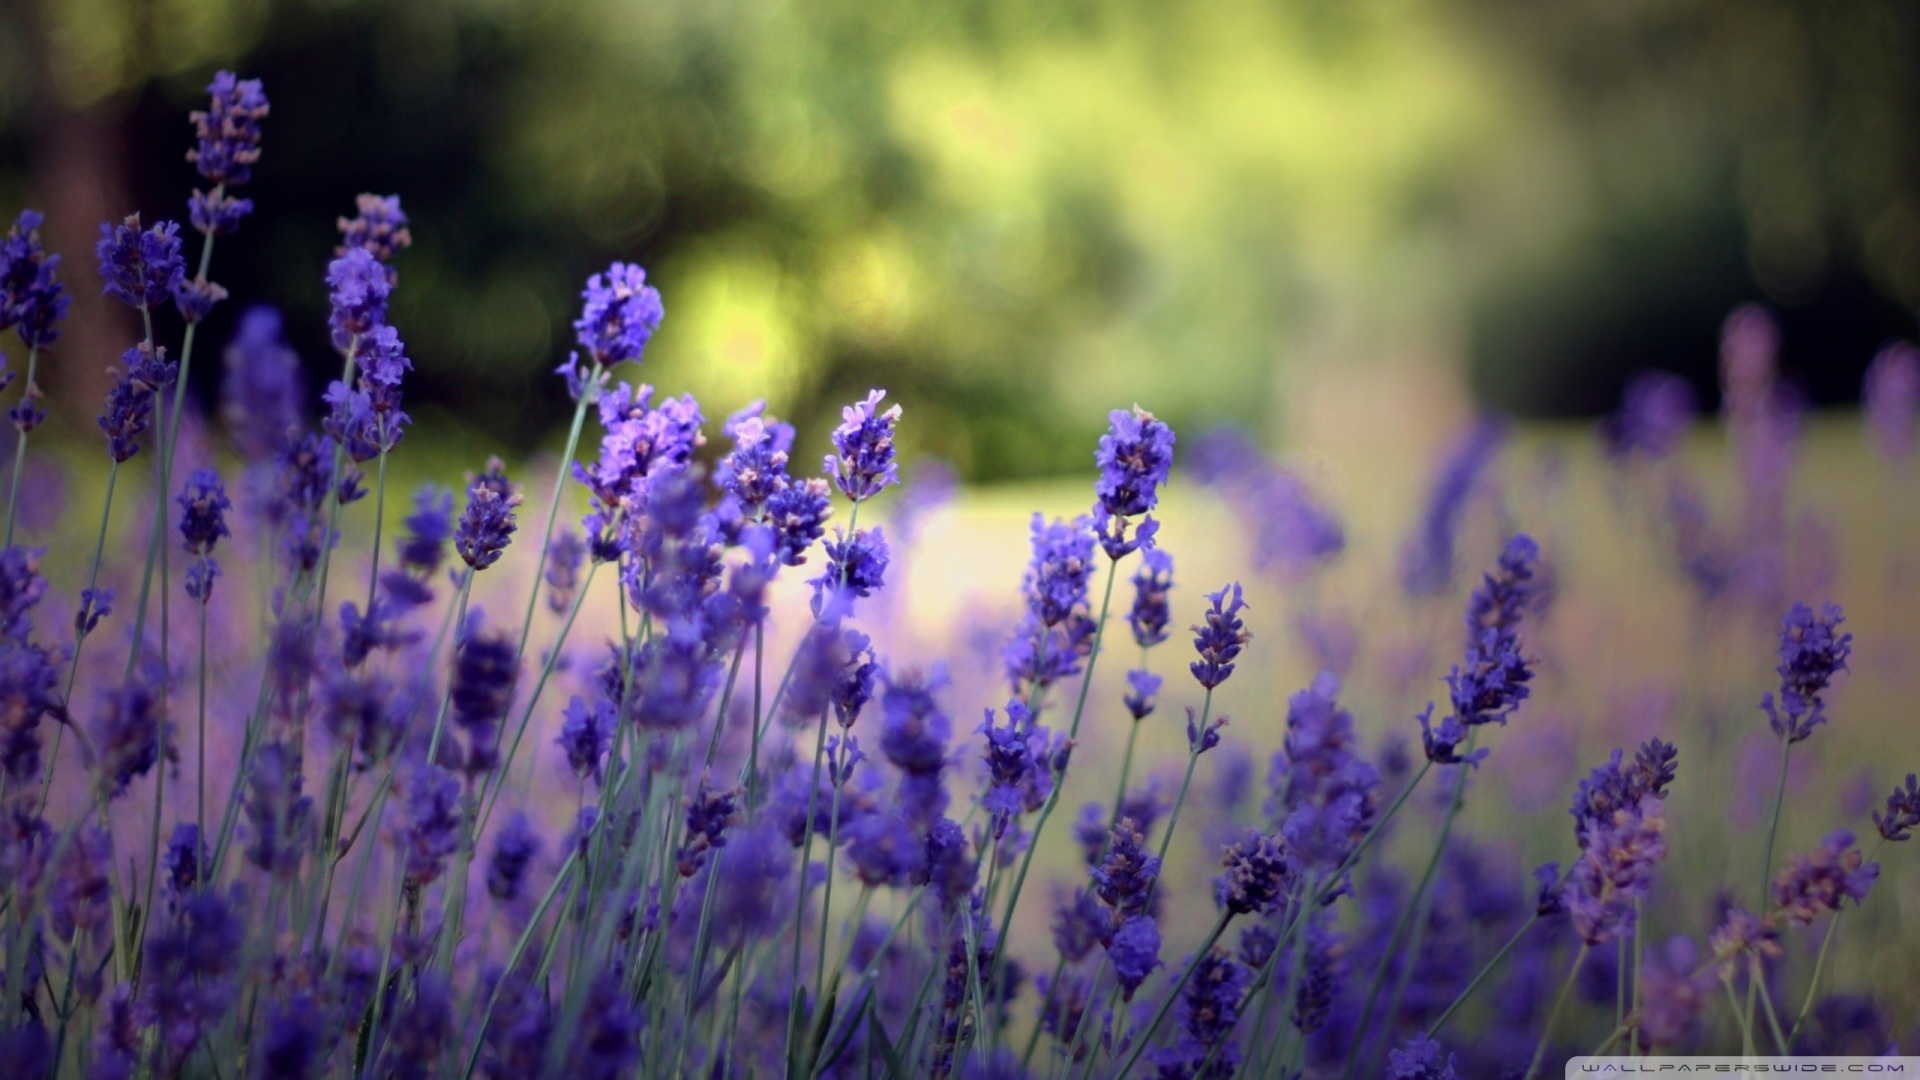 Download Beautiful Lavender Flowers Wallpaper 1920x1080 1920x1080